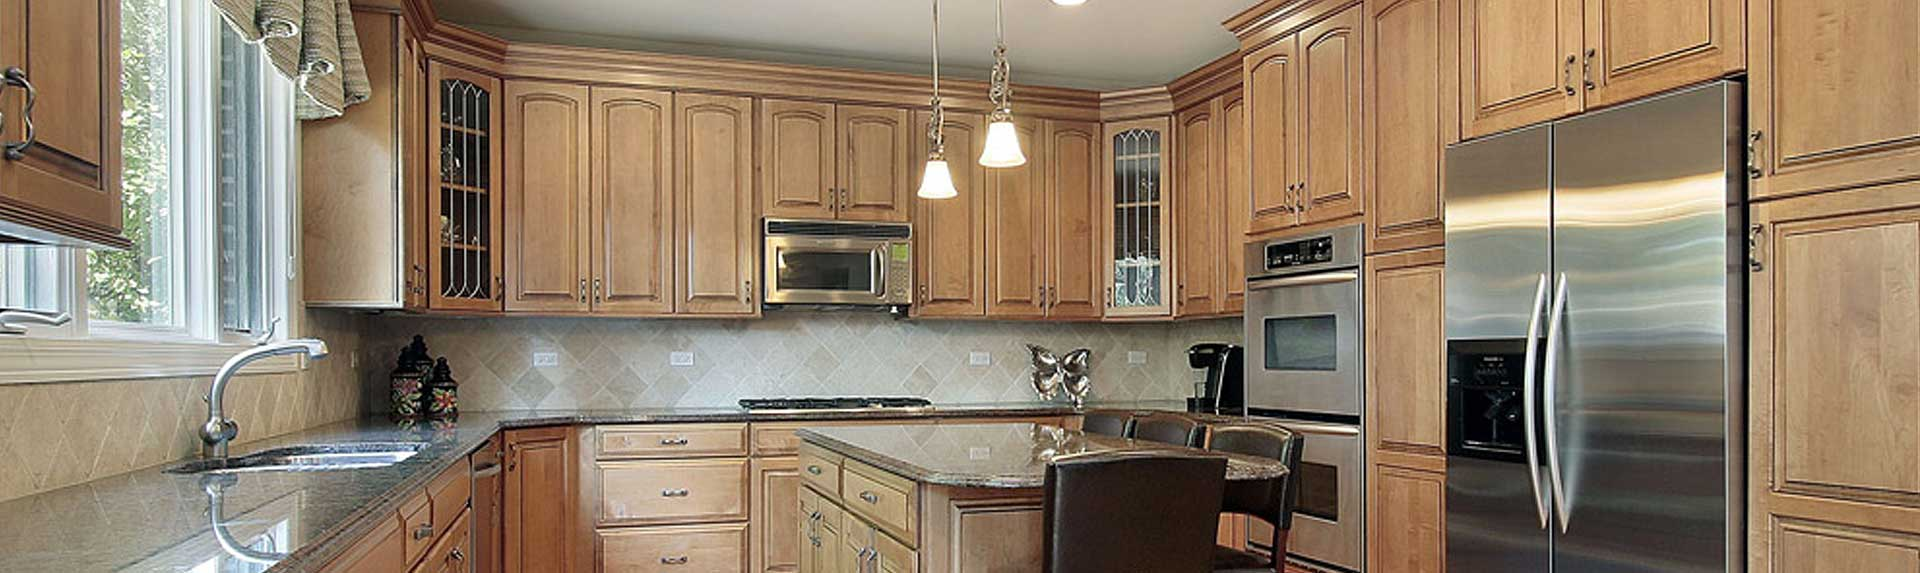 fix kitchen cabinets fix and clean your kitchen cabinets kitchen detailers 15464